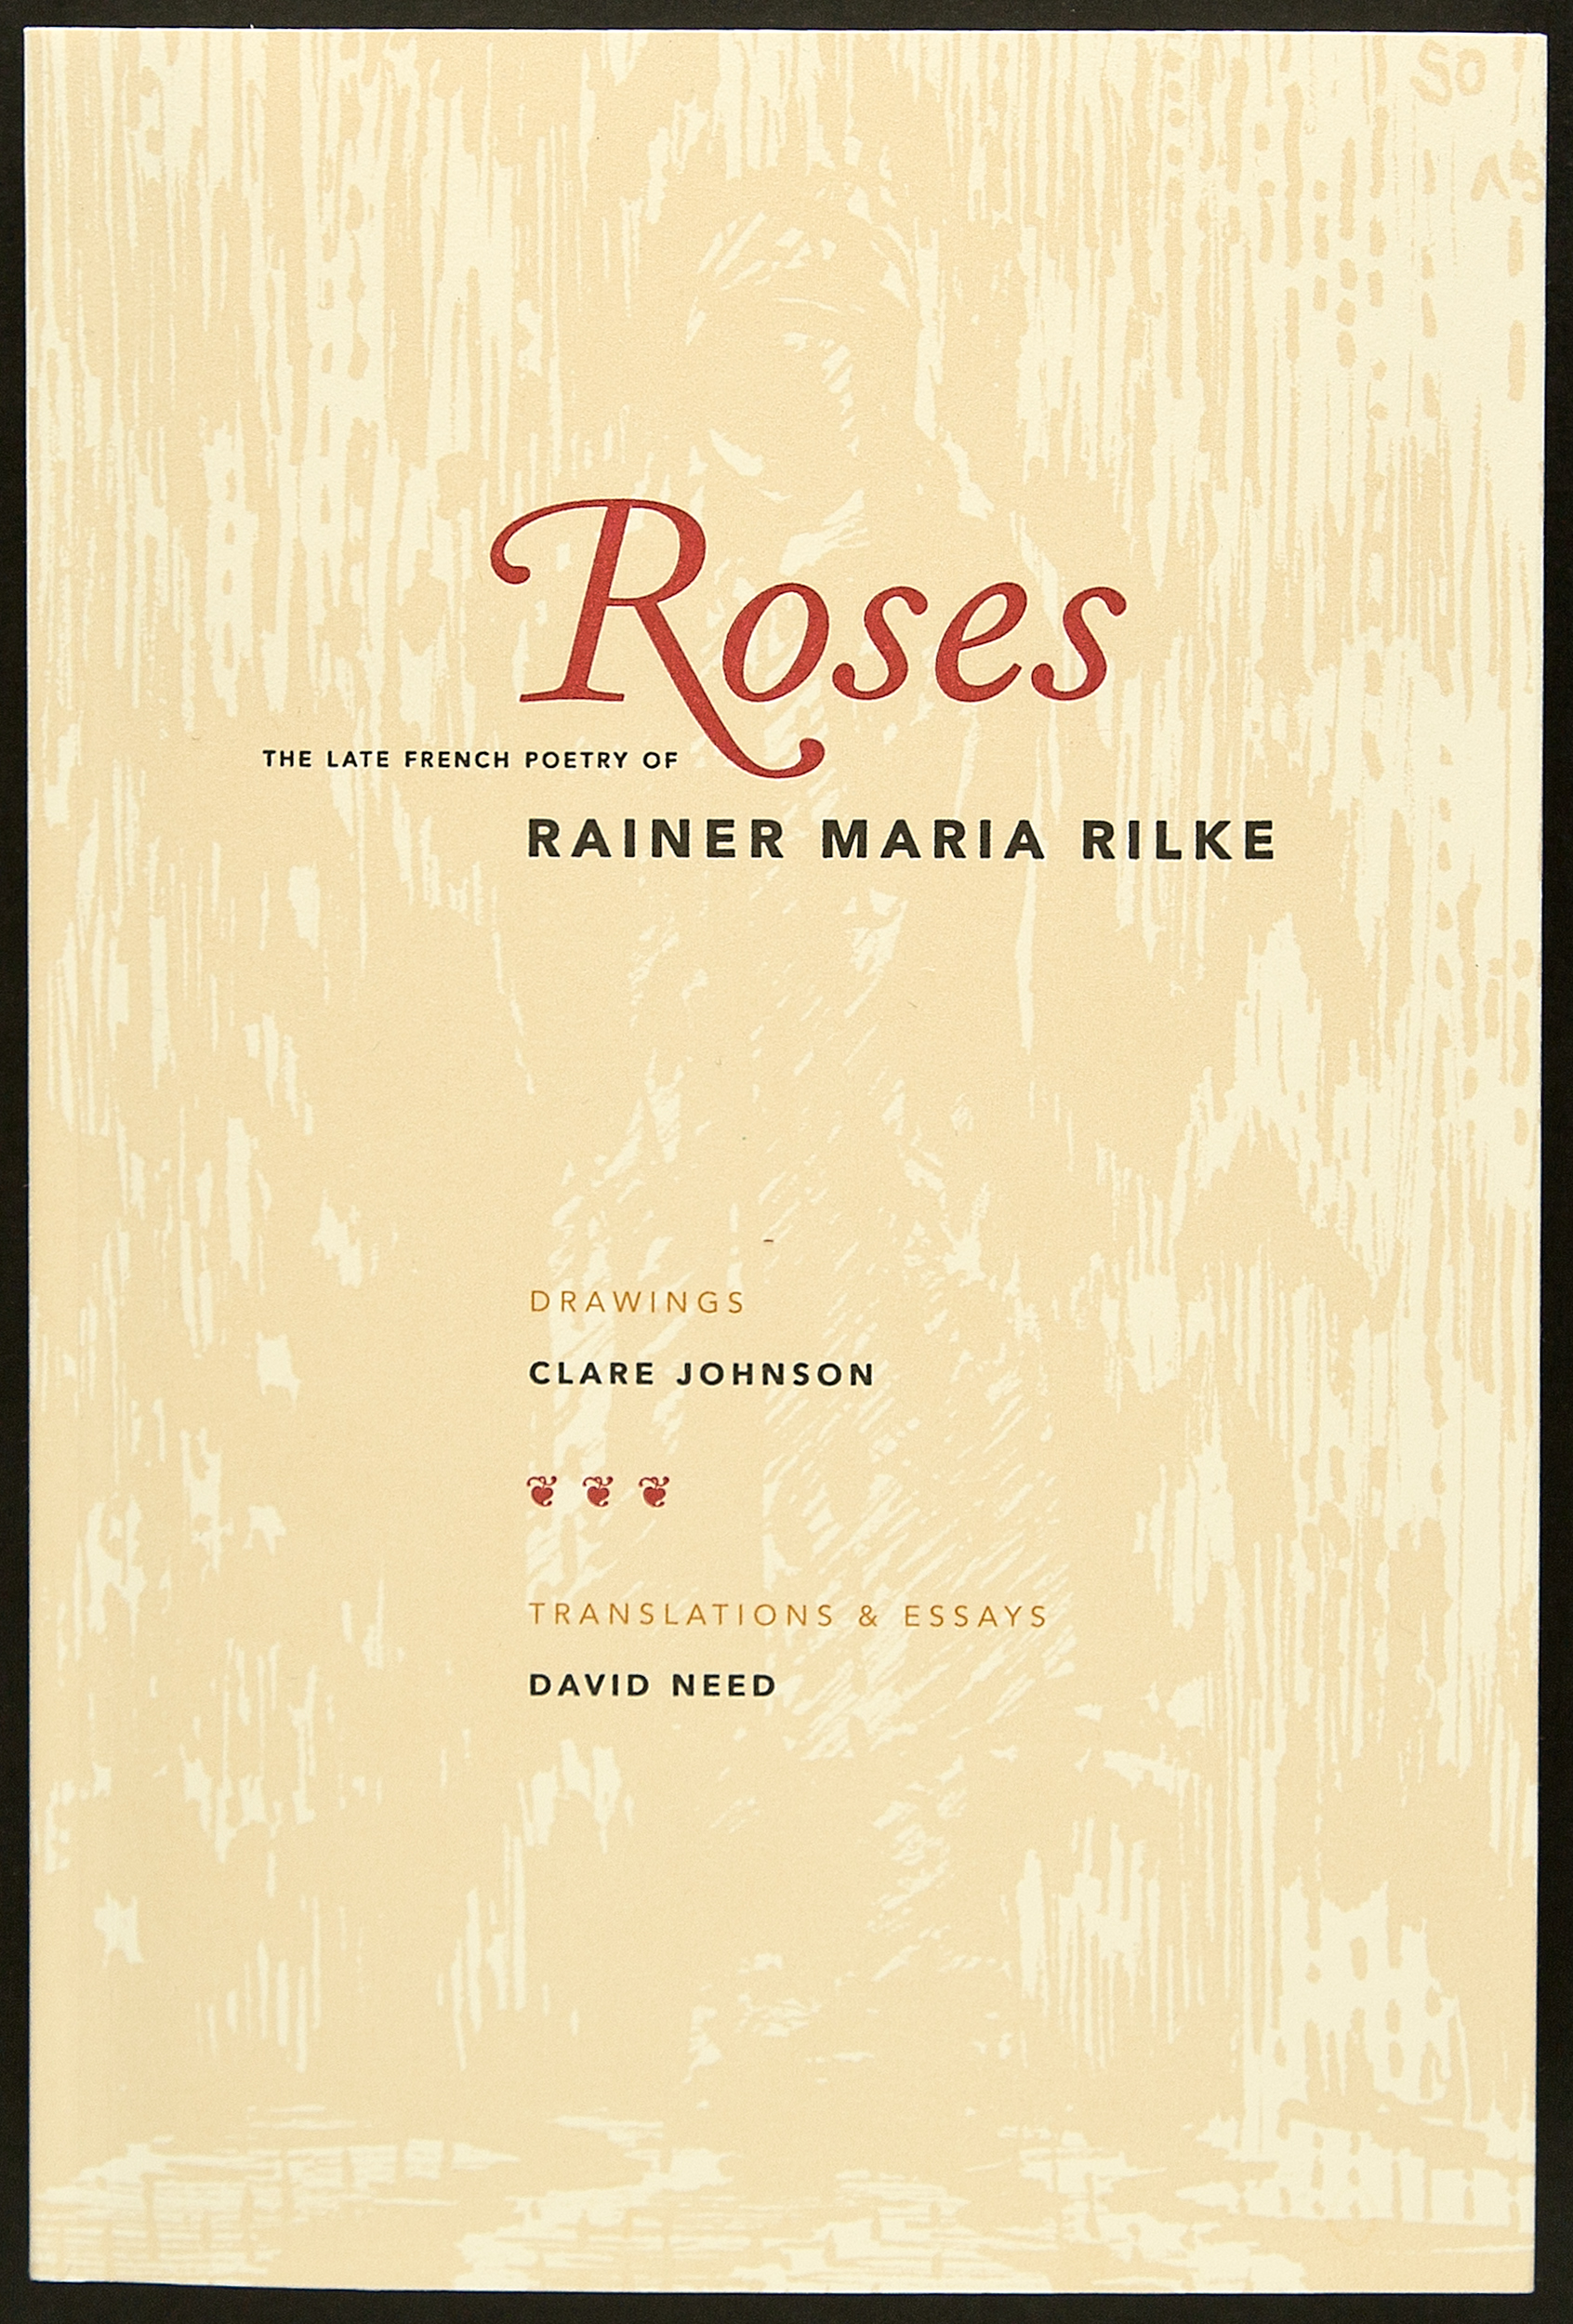 Book cover features a softened background detail of a drawing from the interior. The text was letterpress printed. (in the first printing). Subsequent second printing did not feature hand-printing.